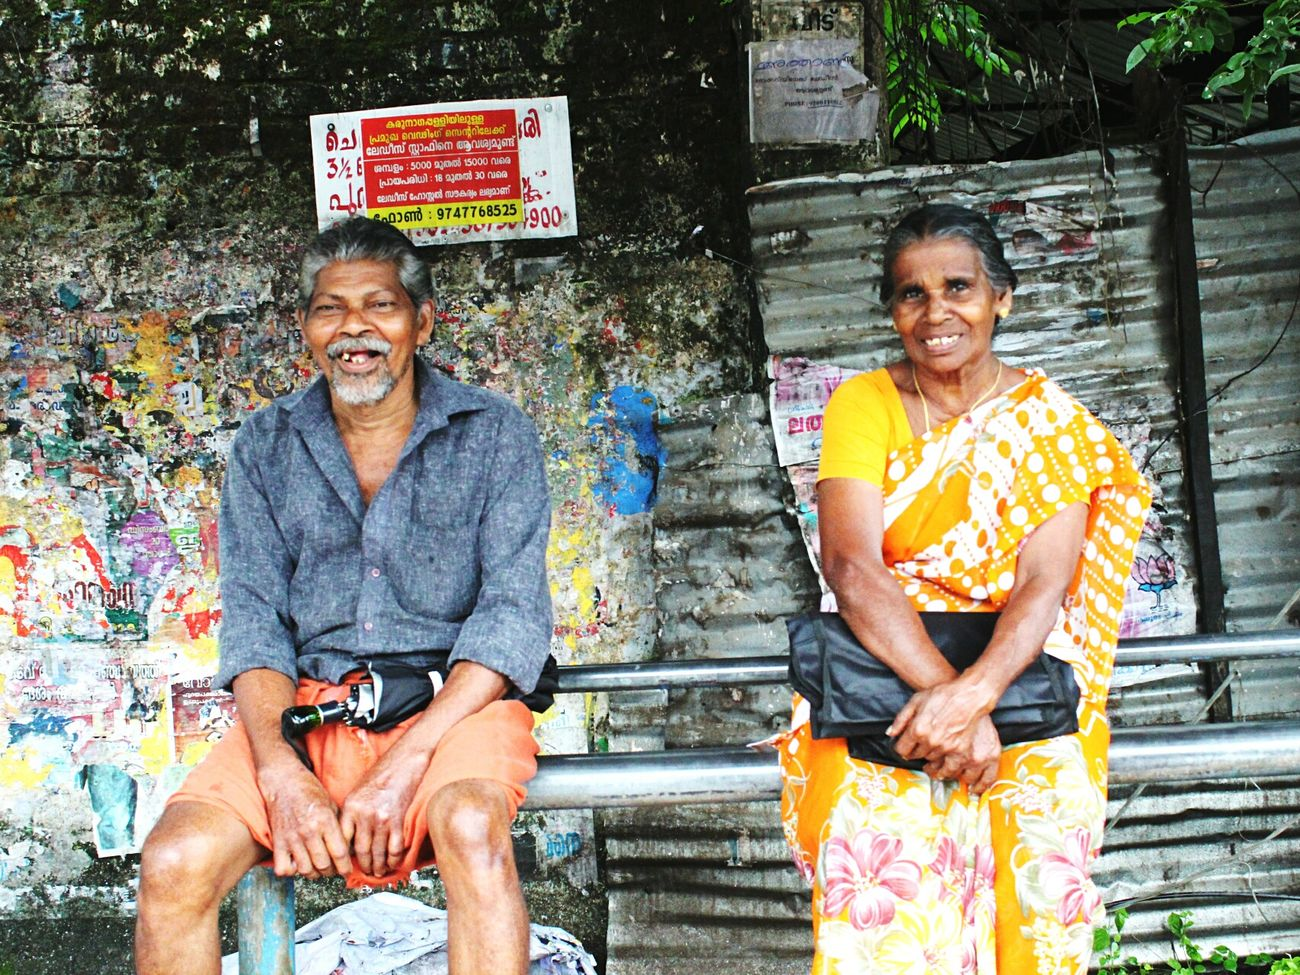 Bus Stop between Aluva and Athani. I cannot speak Malayalam and they do not speak english. The camera did all the talking. Old Folks Kerala India Amateur Photographer First Dslr Canon EOS 1300D Still Learning People The Week On Eyem Original Experiences Feel The Journey Showcase June